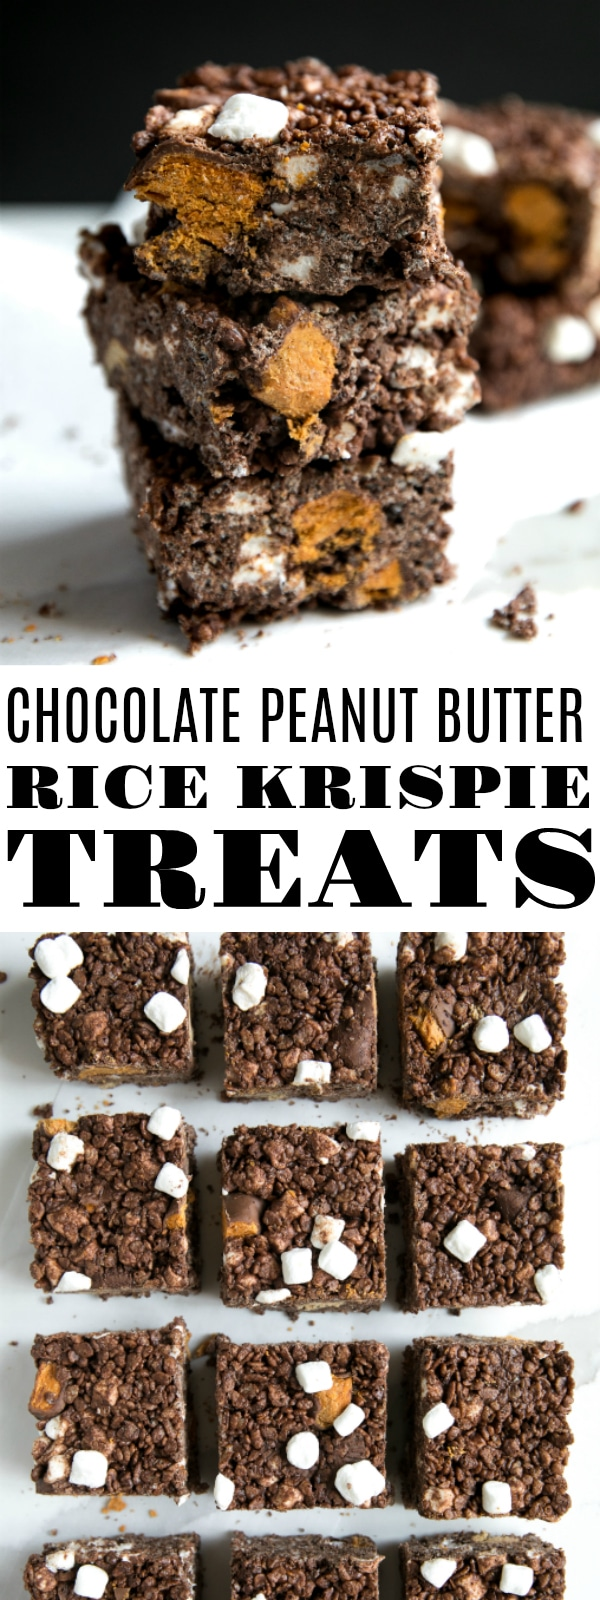 Chocolate Peanut Butter Rice Krispie Treats - fun, festive, and chocolaty twist on the classic, much-loved Rice Krispie Treat Bars. #butterfinger #ricekrispietreats #peanutbutter #chocolate #dessert #marshmallow #halloween | For this recipe and more visit, https://theforkedspoon.com/peanut-butter-rice-krispie-treats